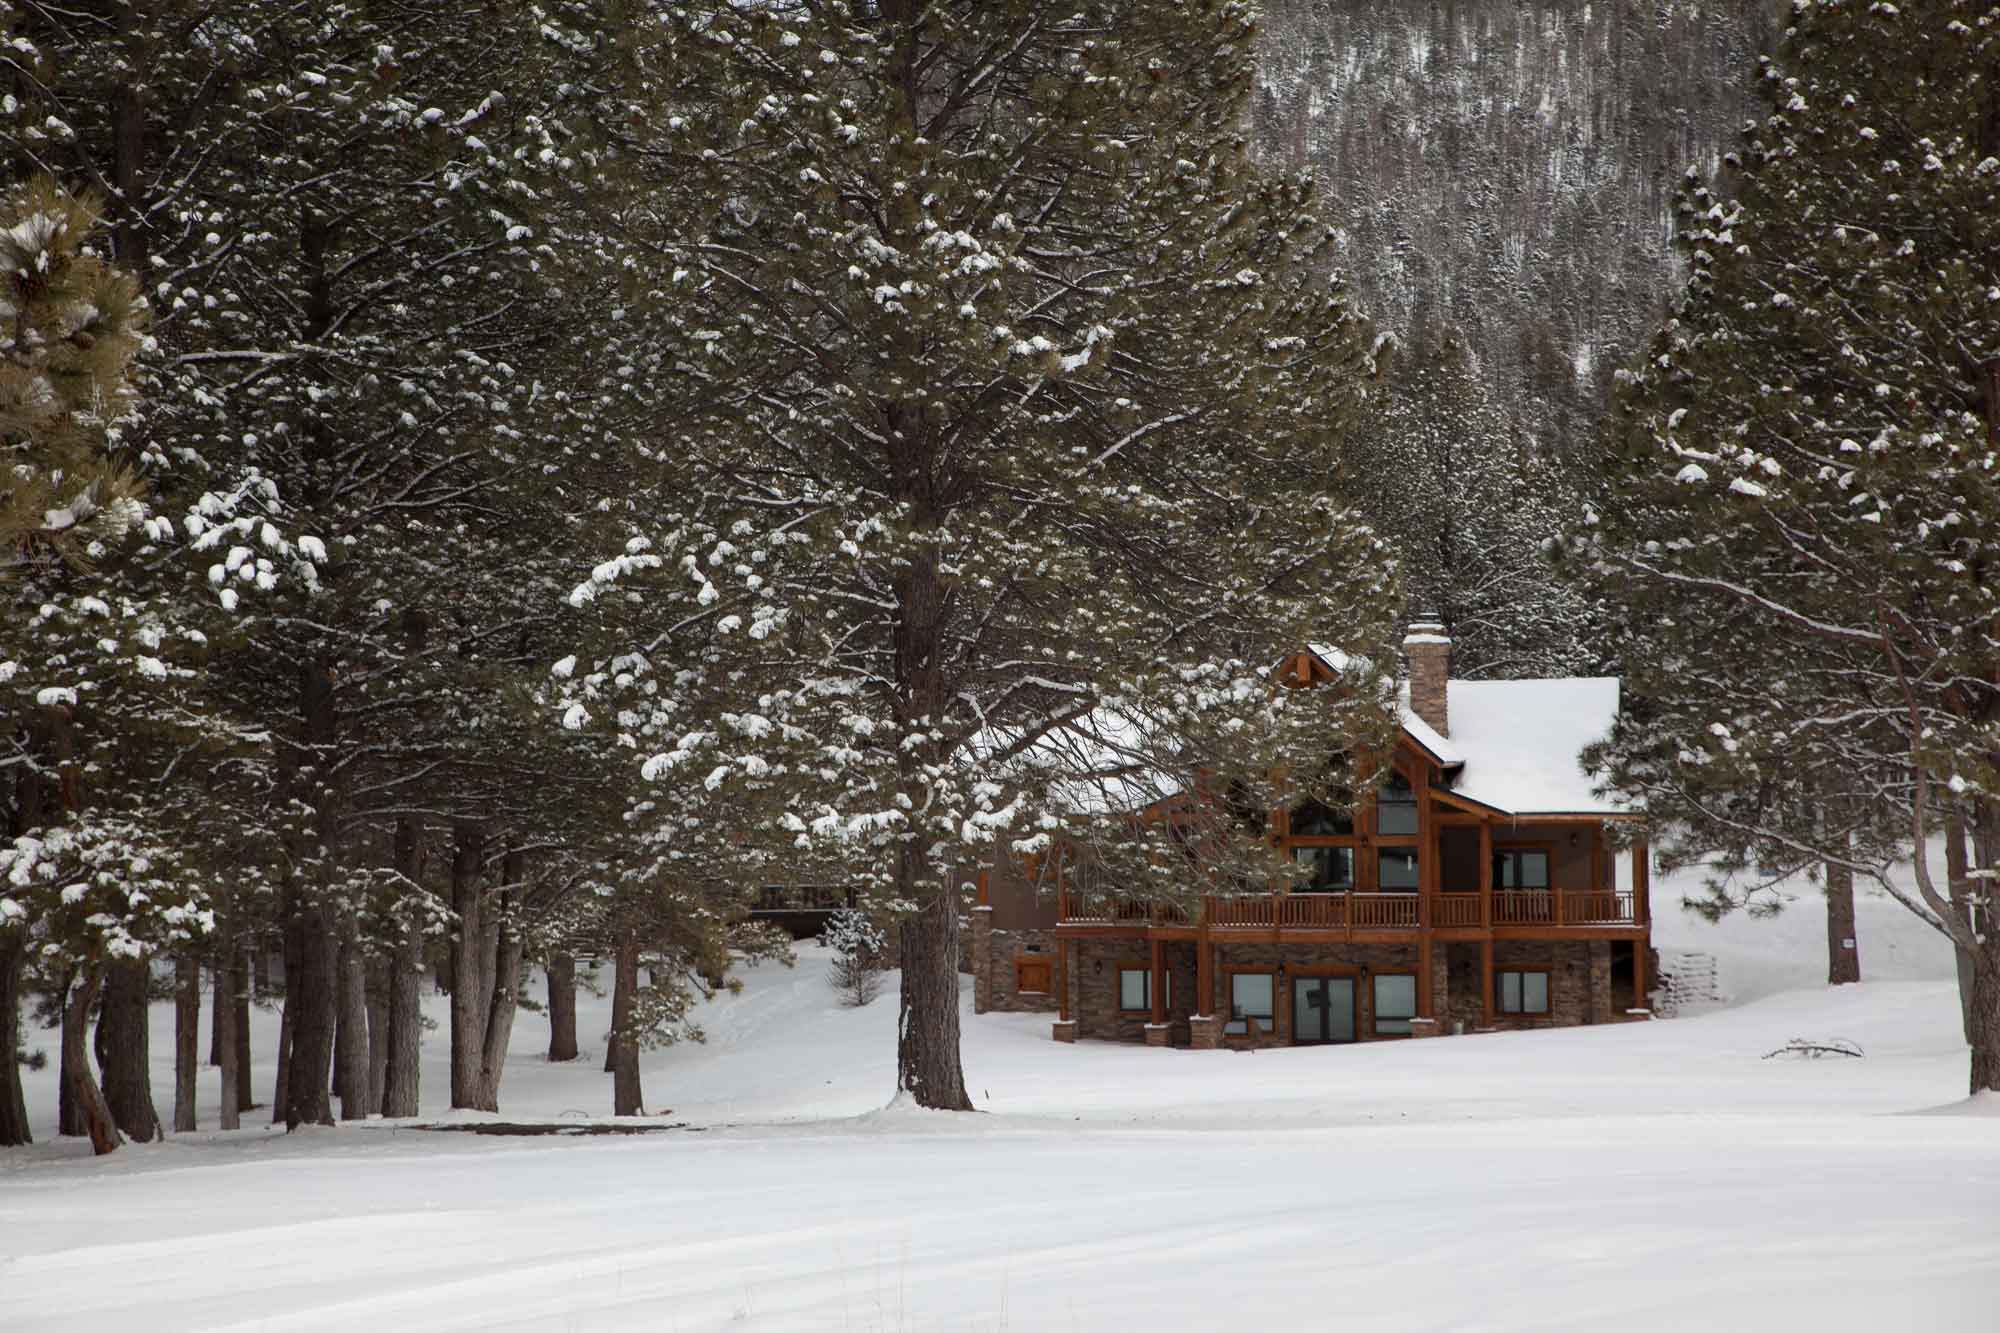 snowy log cabin in the sangre de cristos